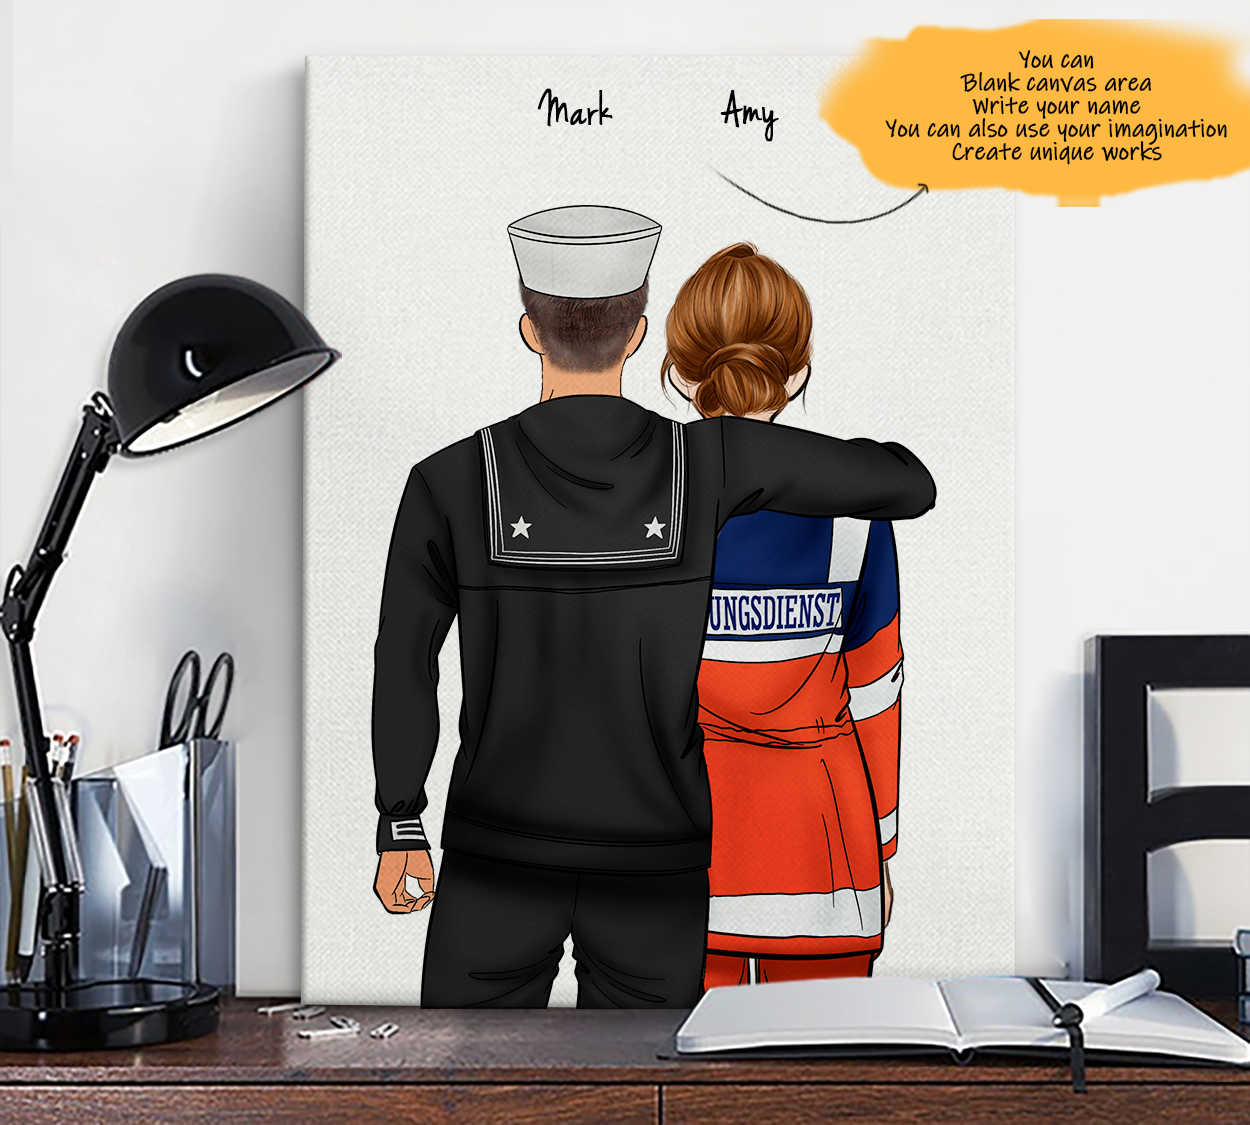 He is My Friend! Hand Draw Custom Canvas-Print Gift NavyUS-Tan&AmbulanceDriverGermany